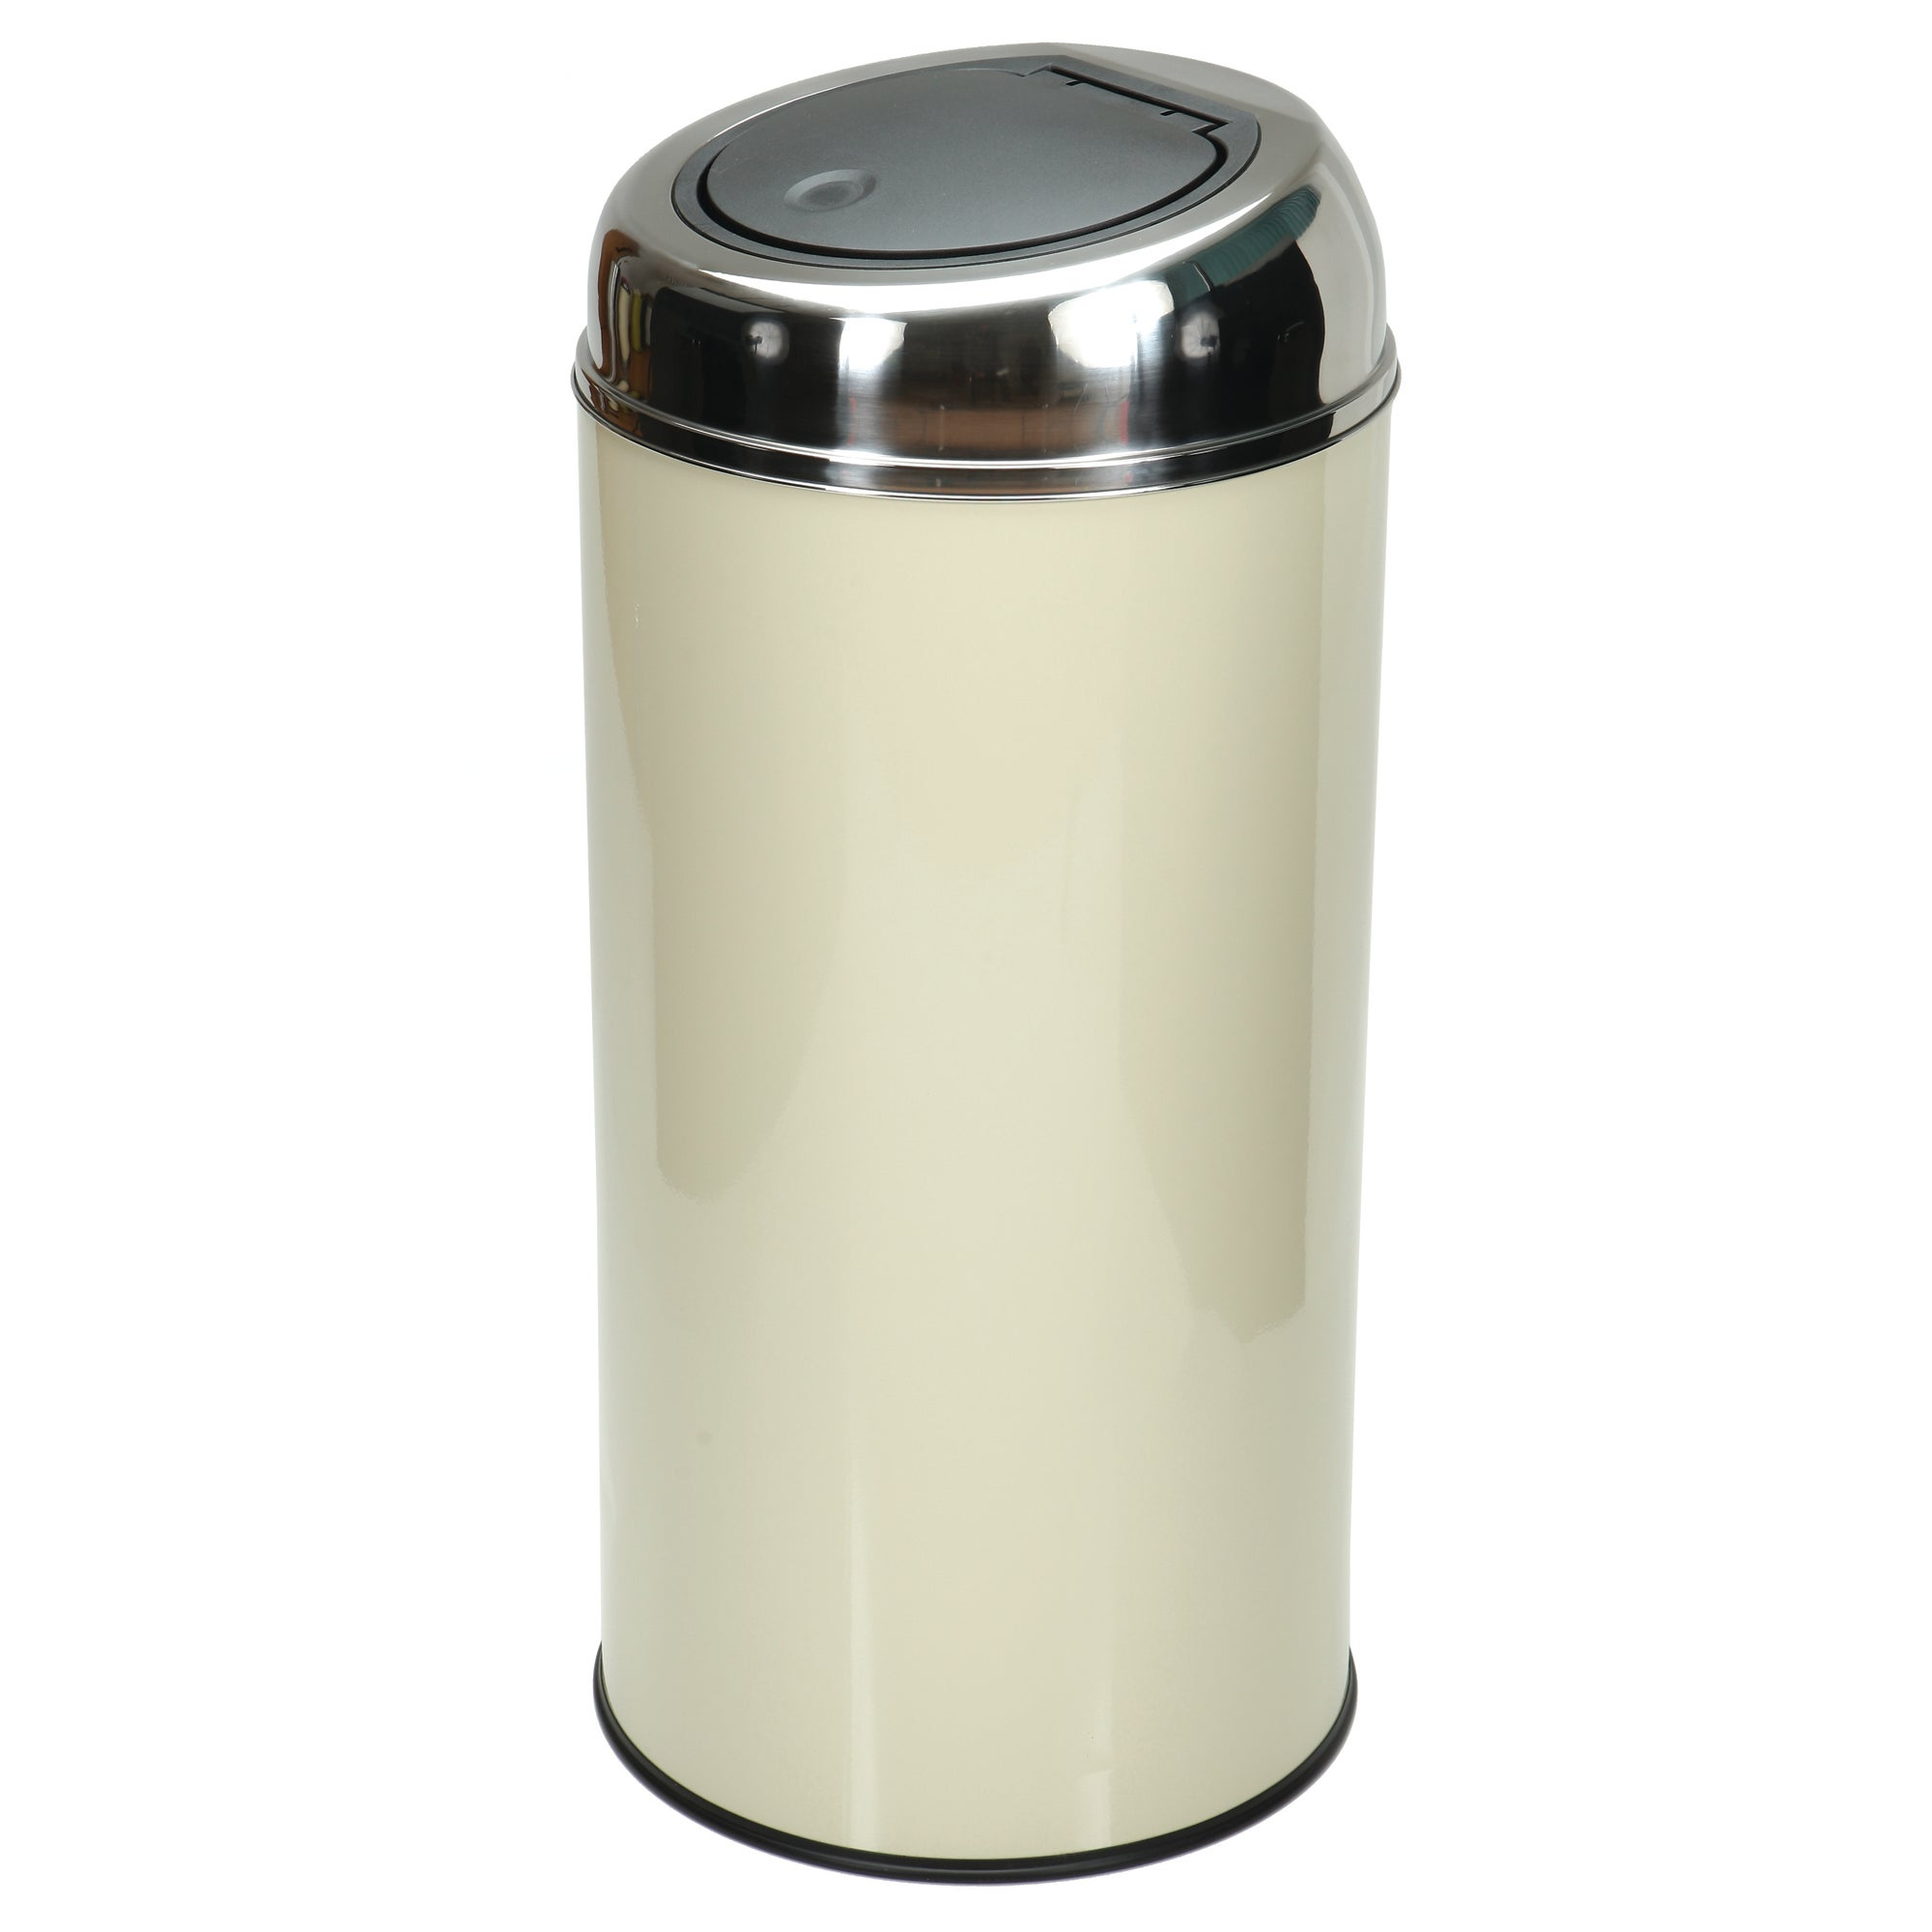 Infinity Matt Cream 50 Litre Press Top Bin